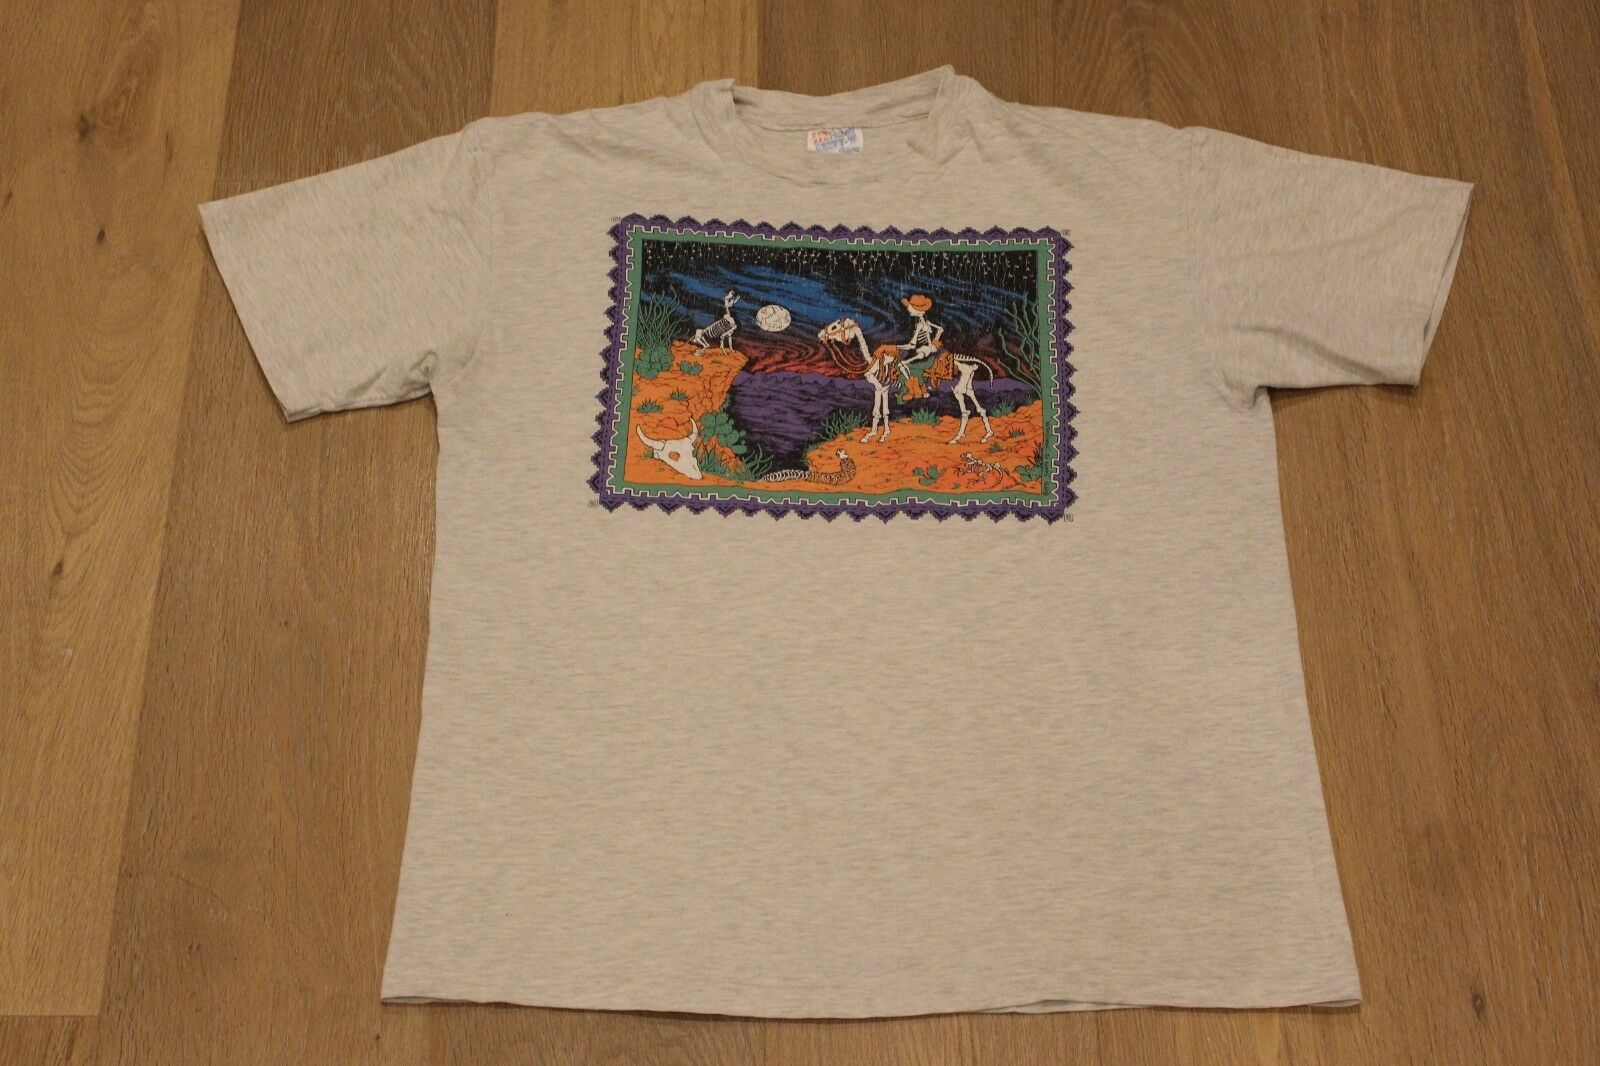 Vintage 90s Grateful Dead Santa Fe 1991 Tee Large Grau T-shirt Jerry Garcia Lot